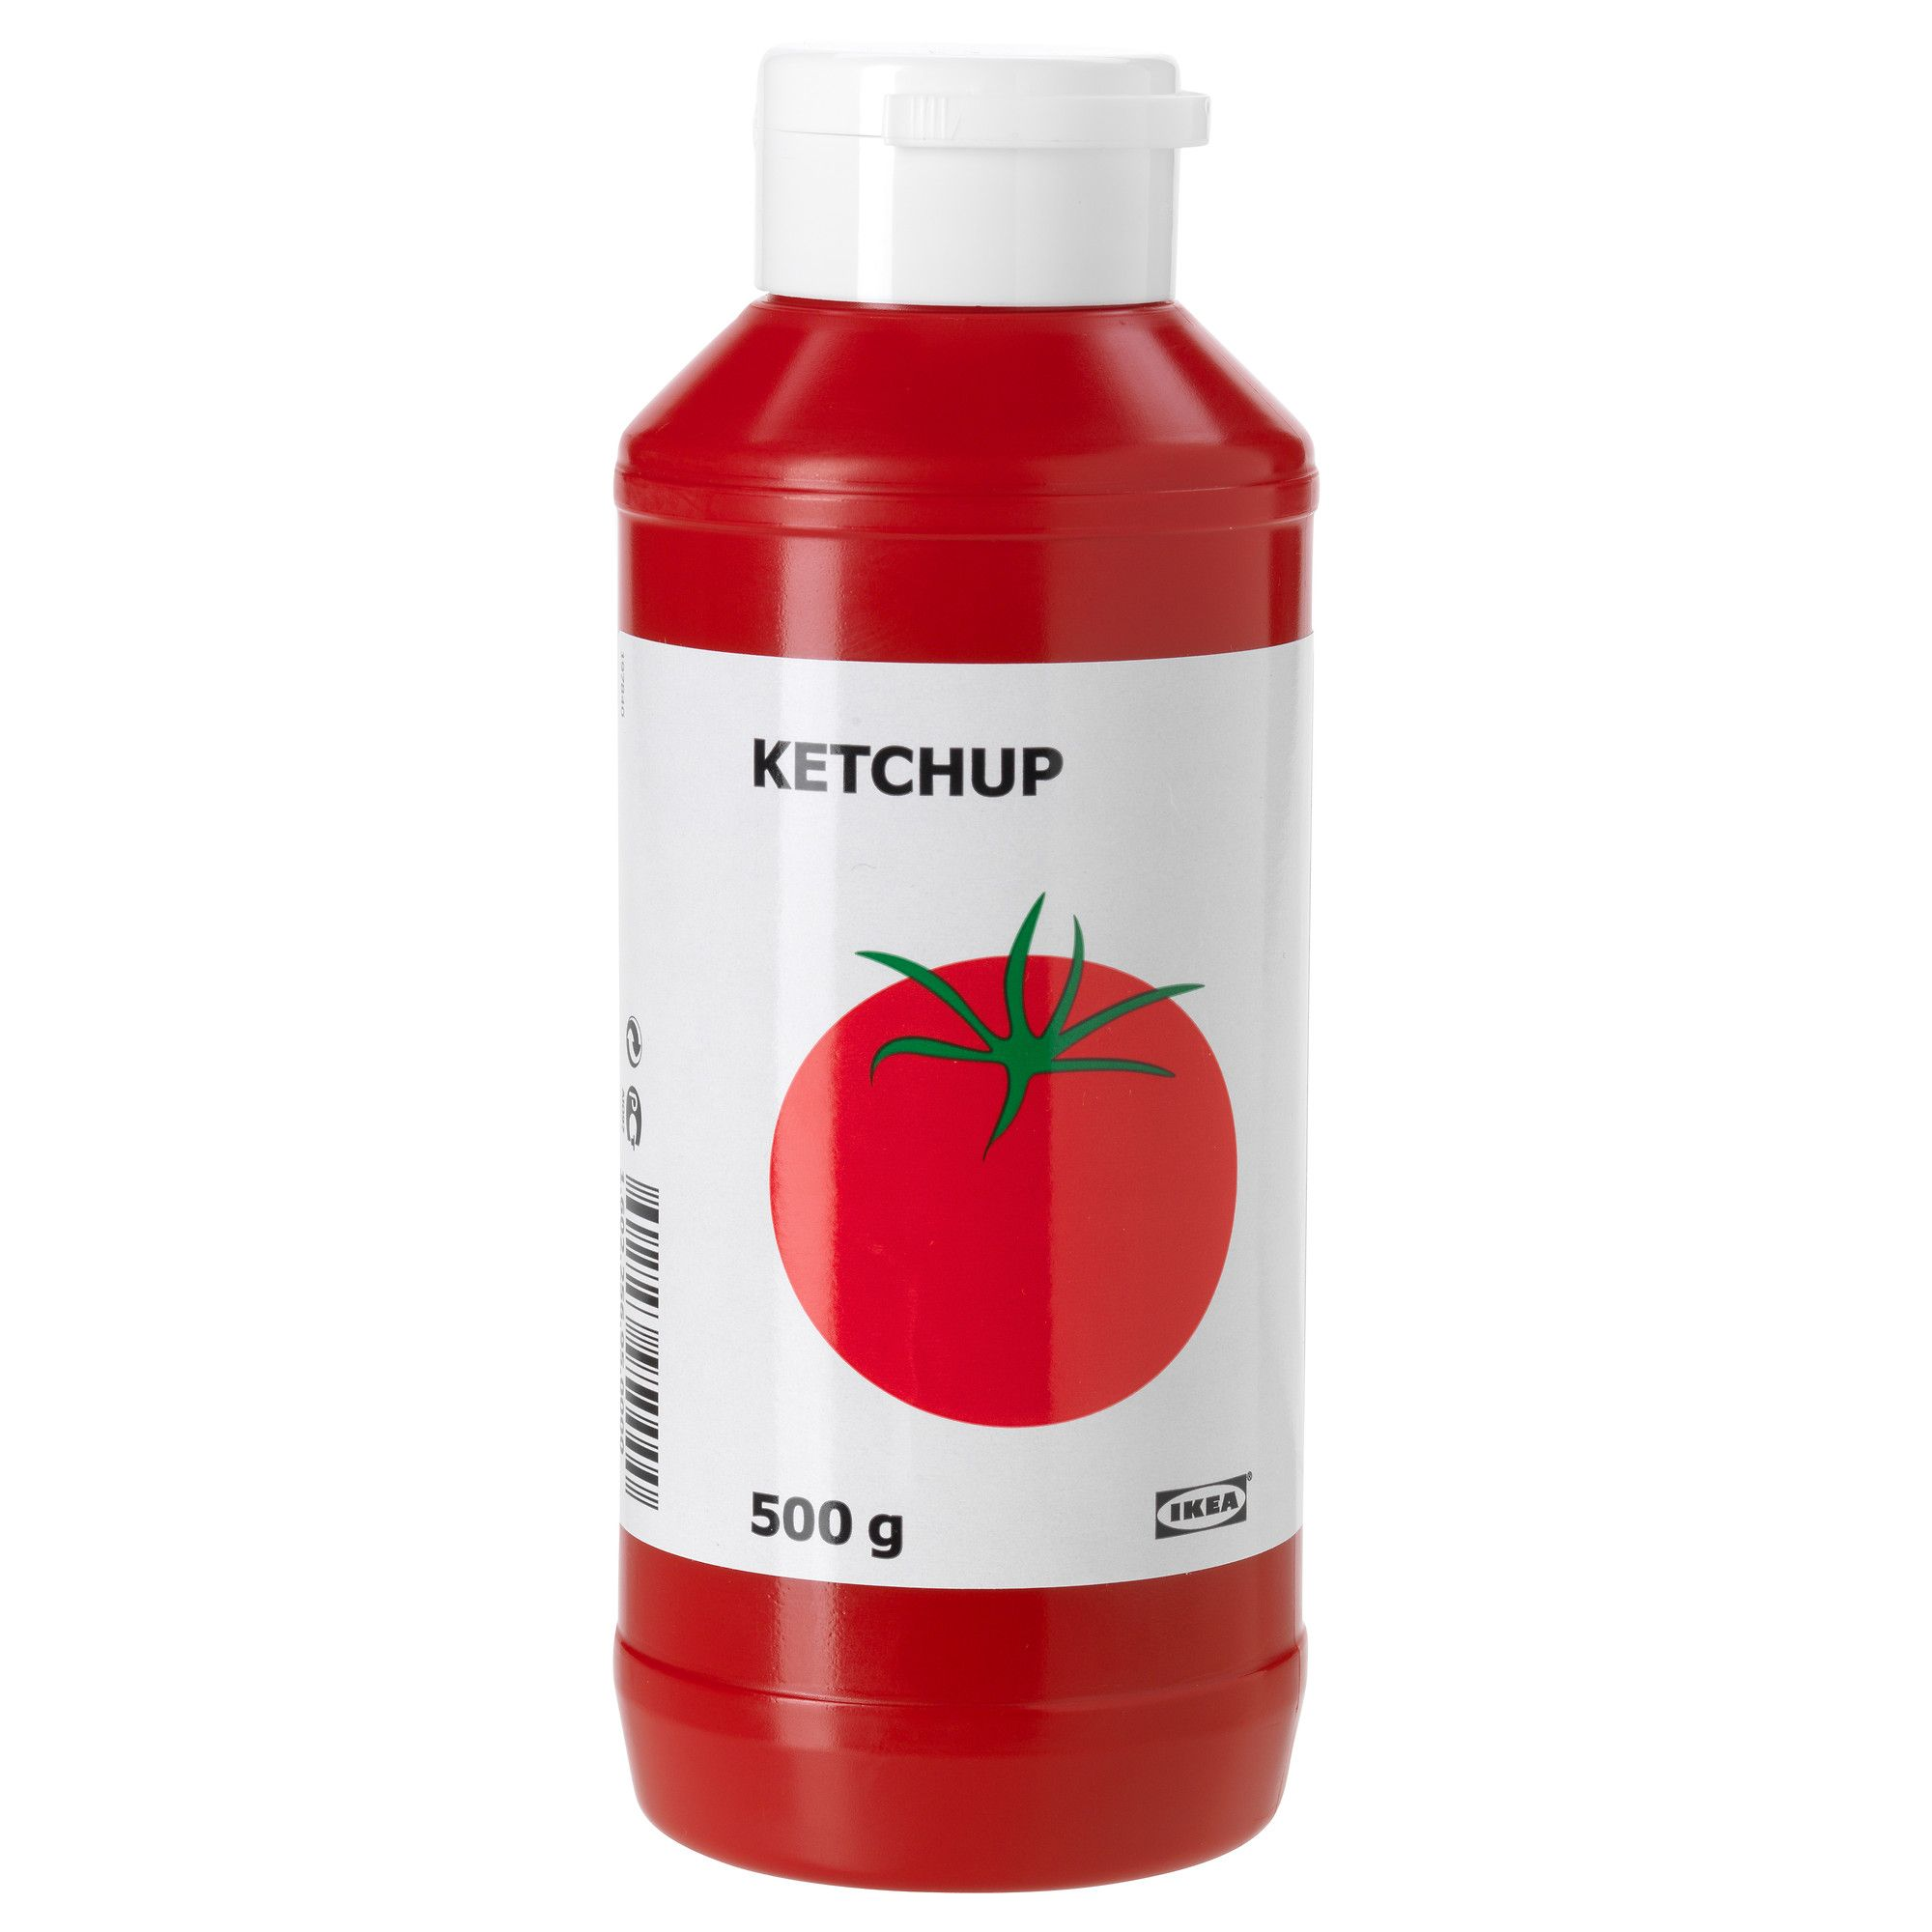 Ikea Us Furniture And Home Furnishings Ketchup Tomato Ketchup Spices Packaging